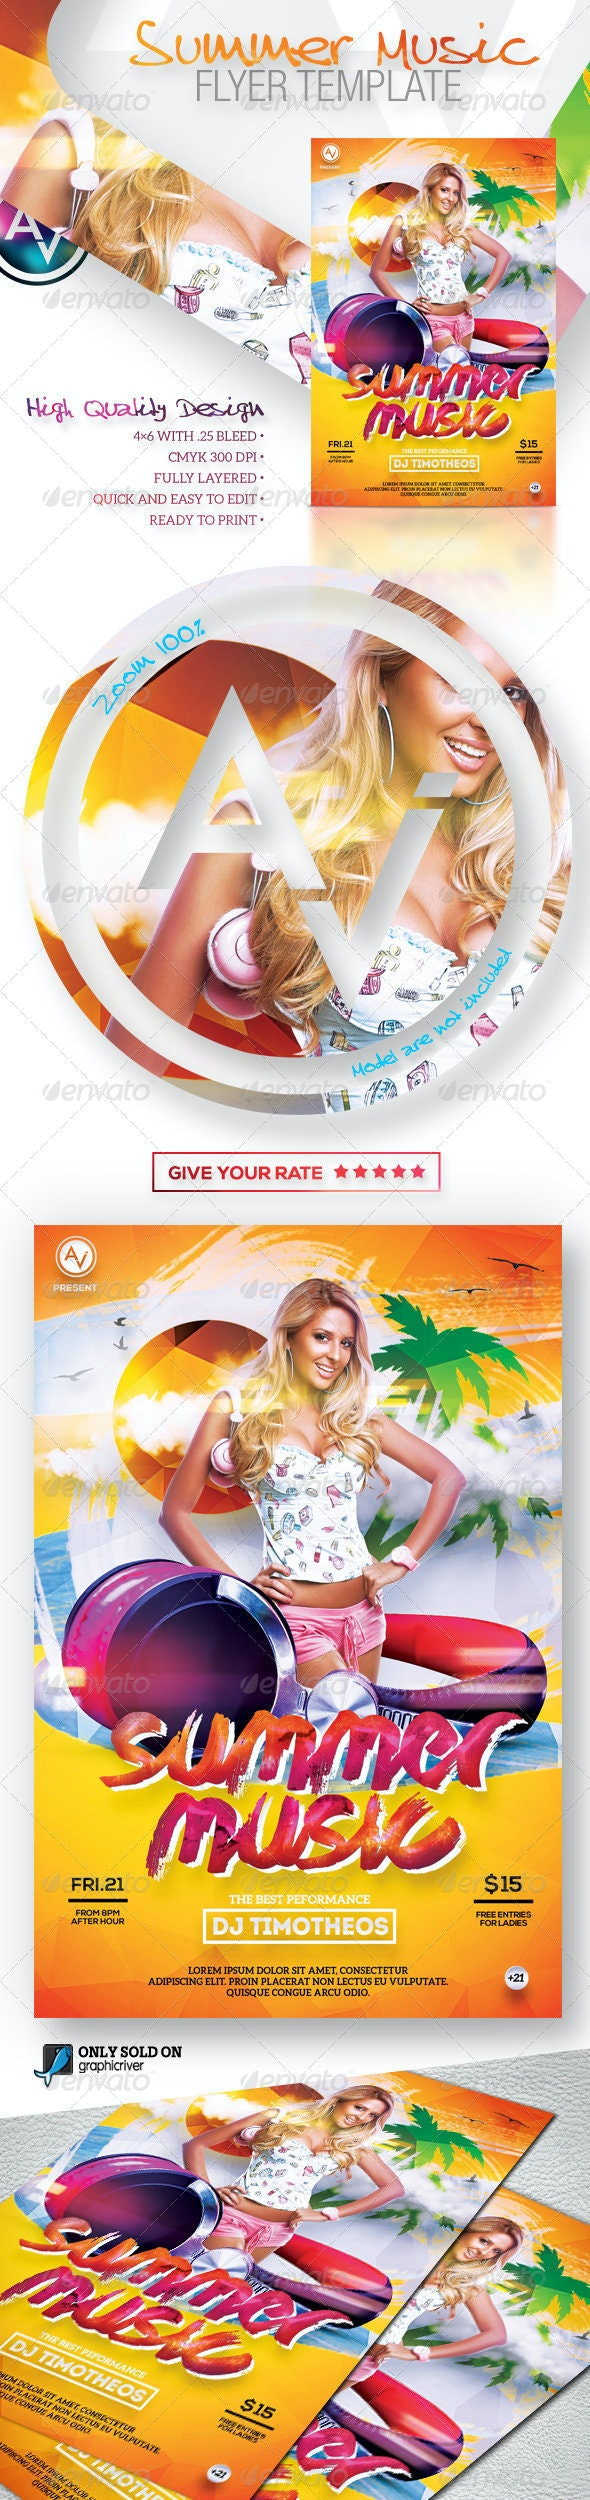 Summer Music Flyer Template - Clubs & Parties Events